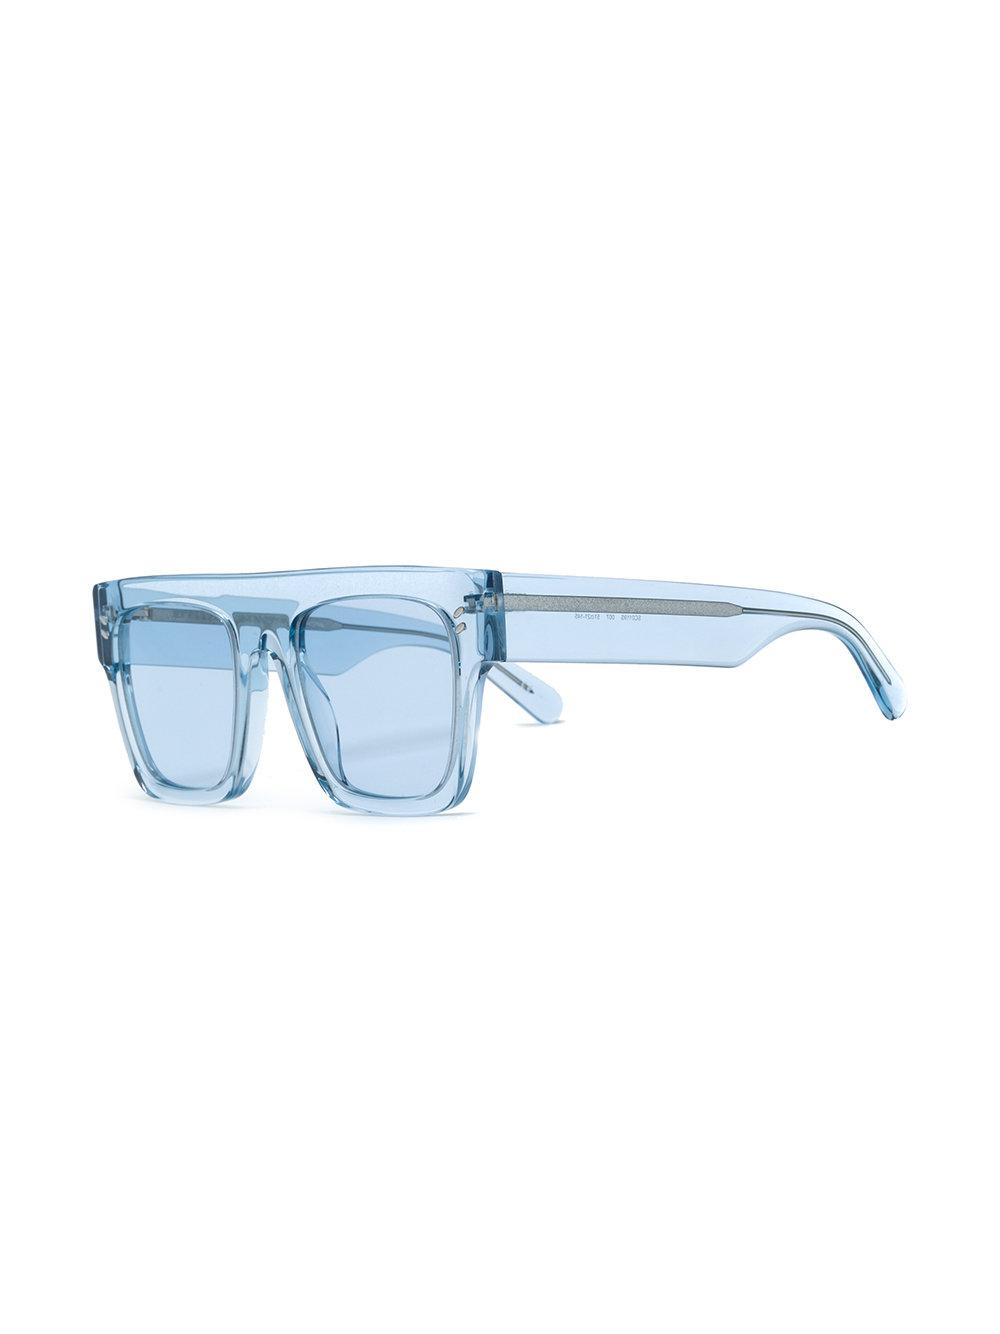 Stella McCartney Square Frame Sunglasses in Blue